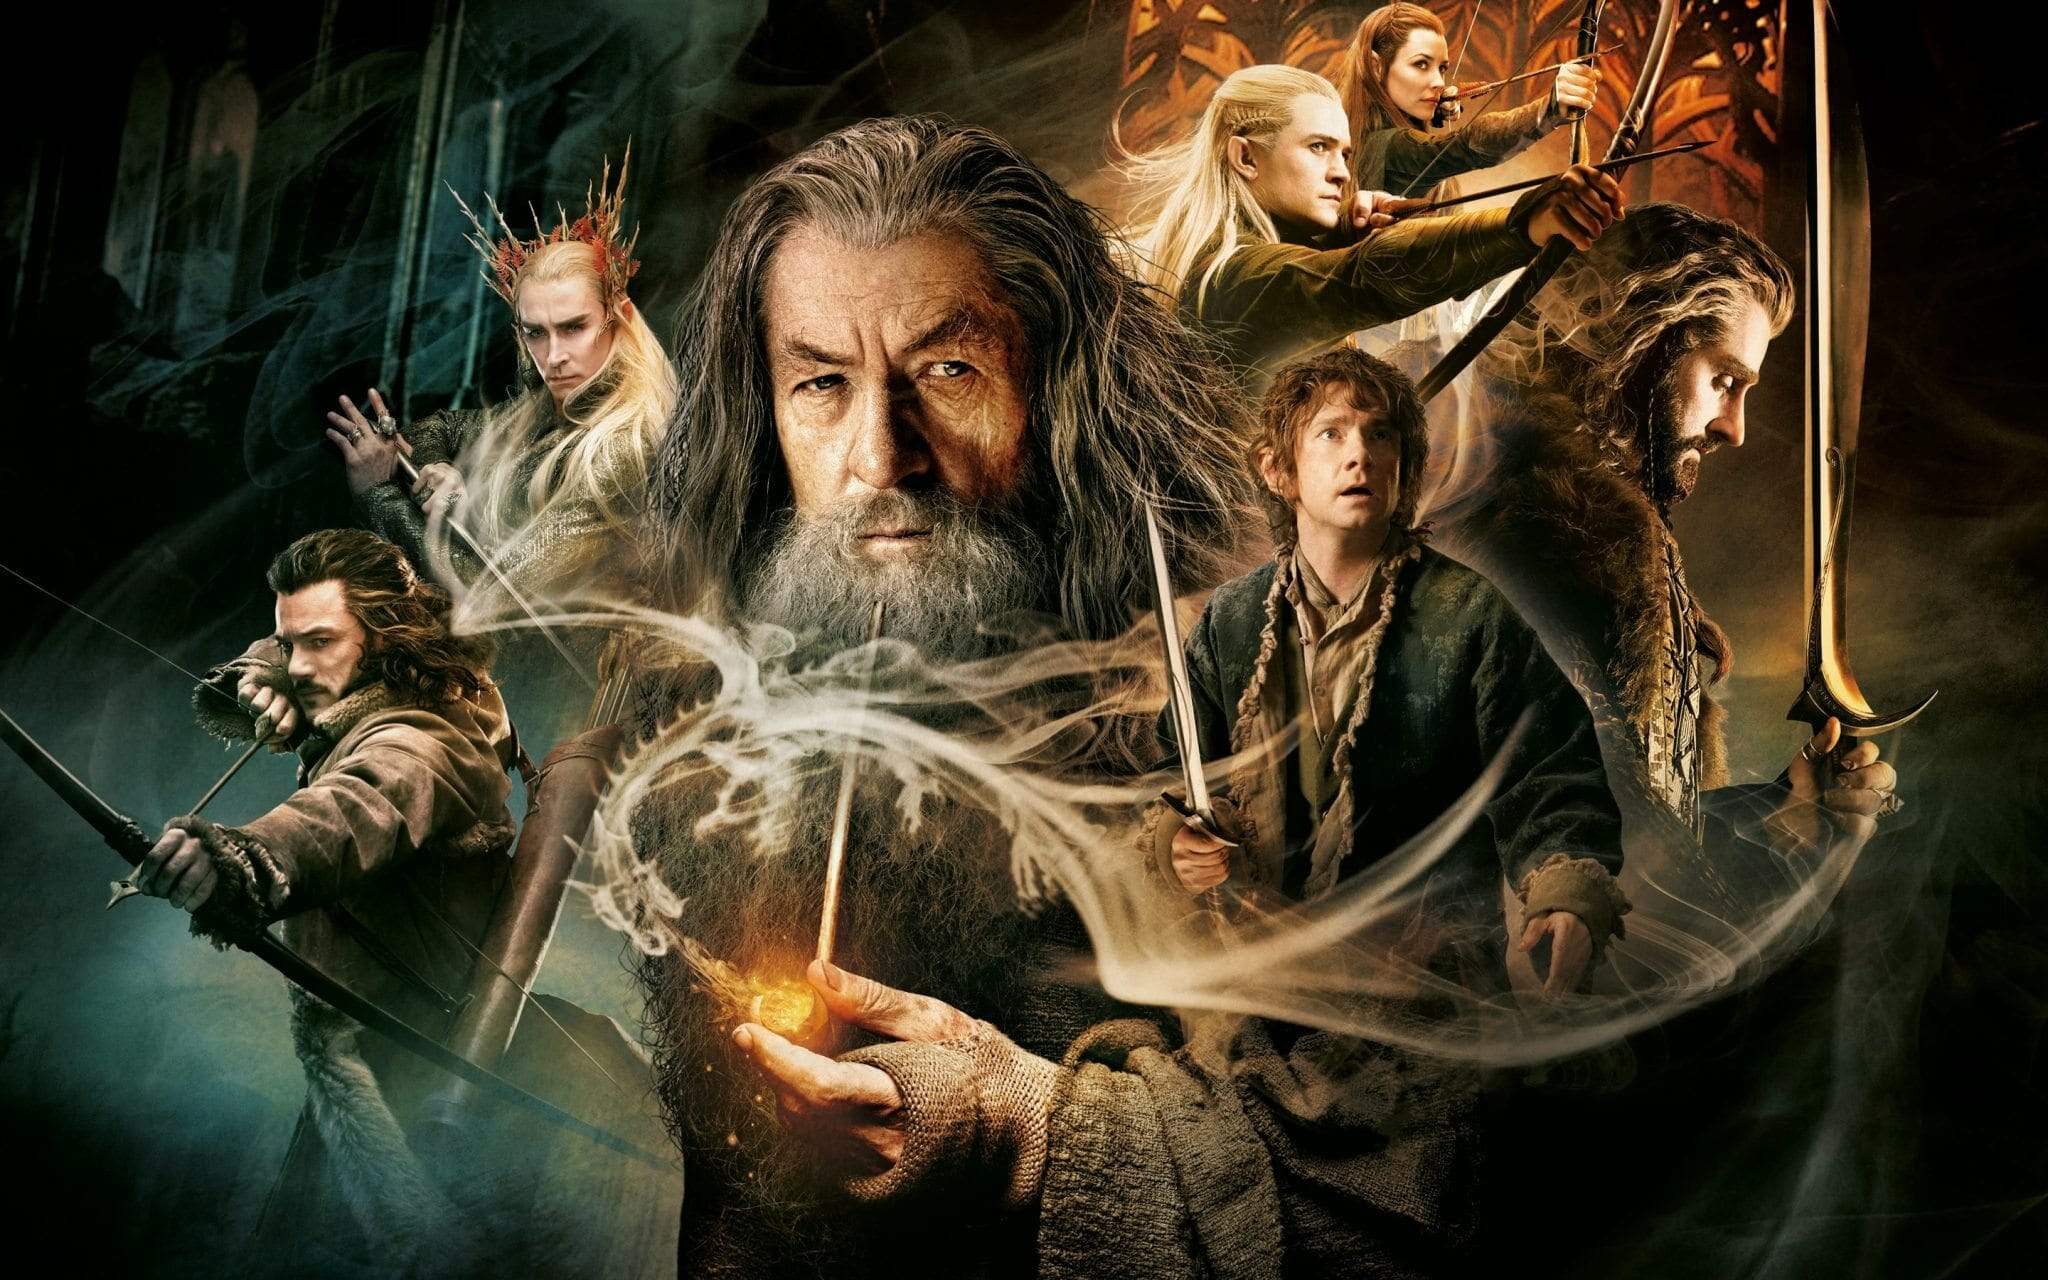 When Will We See the Final Trailer For The Hobbit 3?